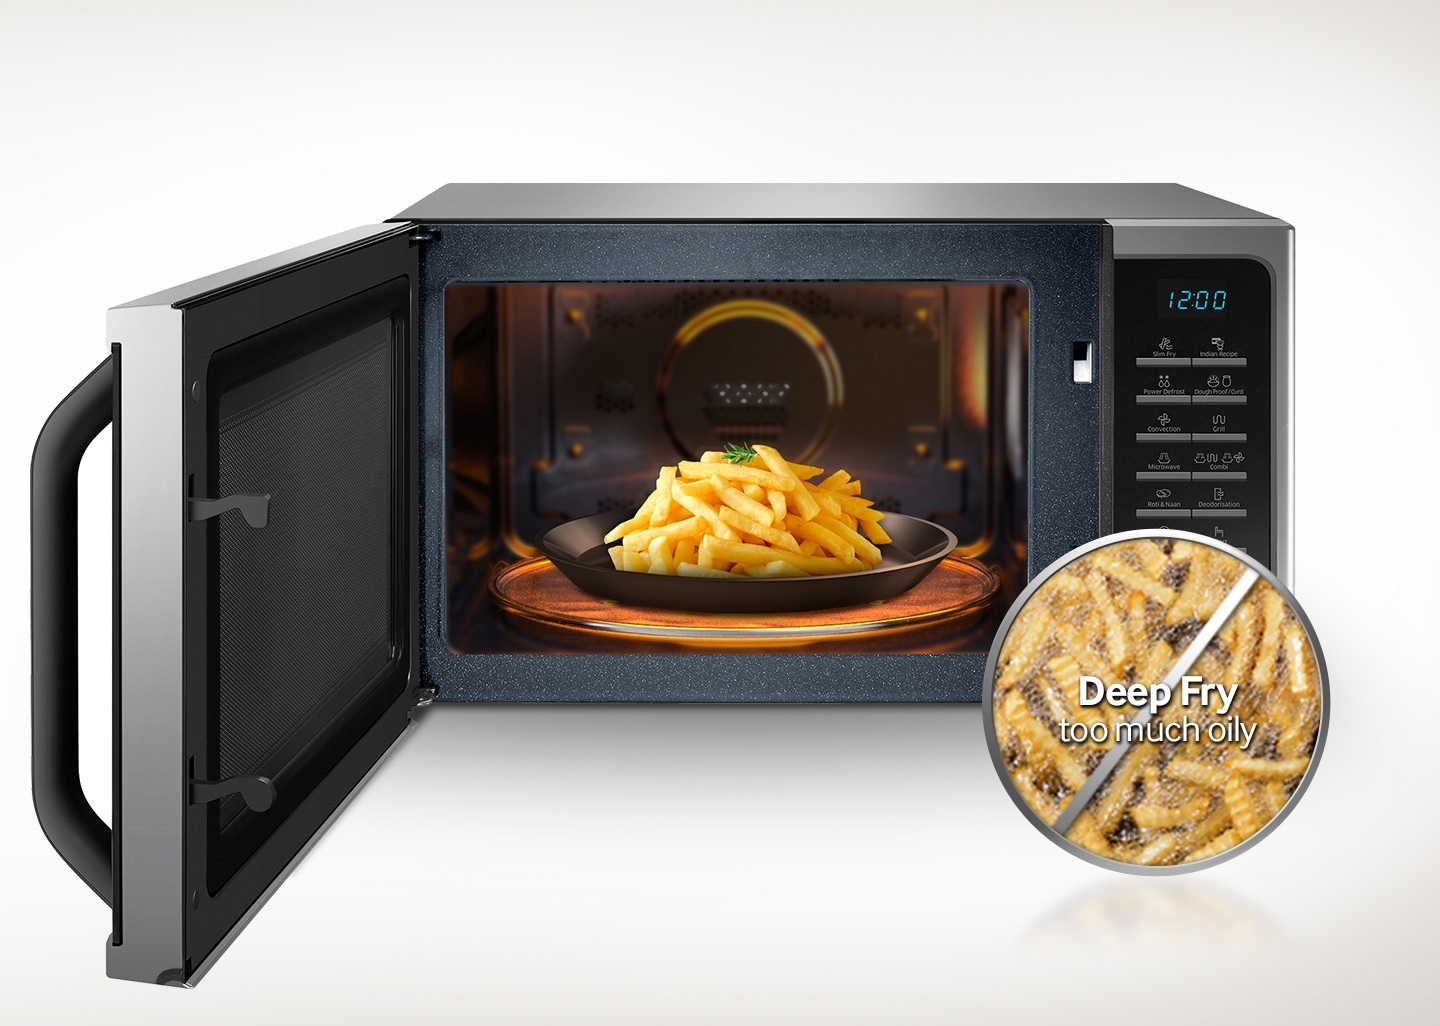 Microwave That Cooks Healthy Fried Food